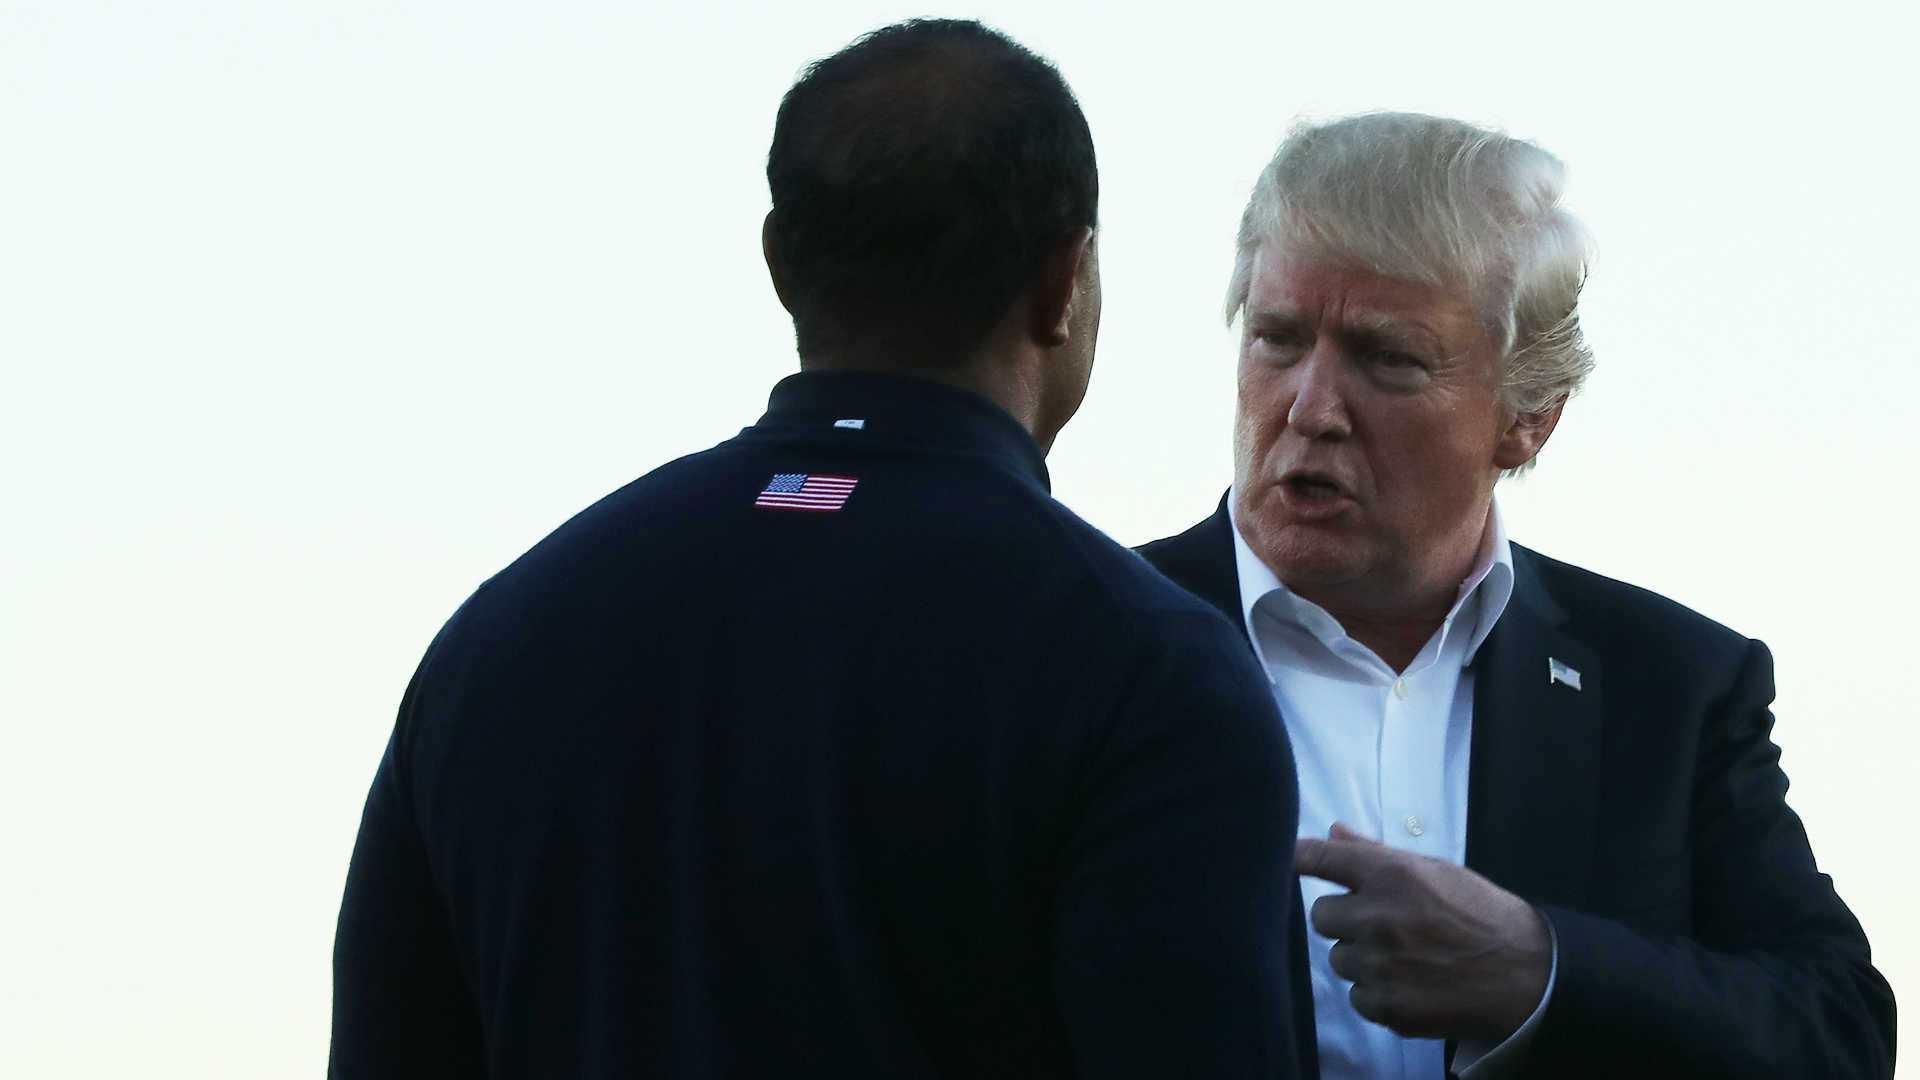 President Donald Trump to 'quickly' golf with Tiger Woods, Dustin Johnson